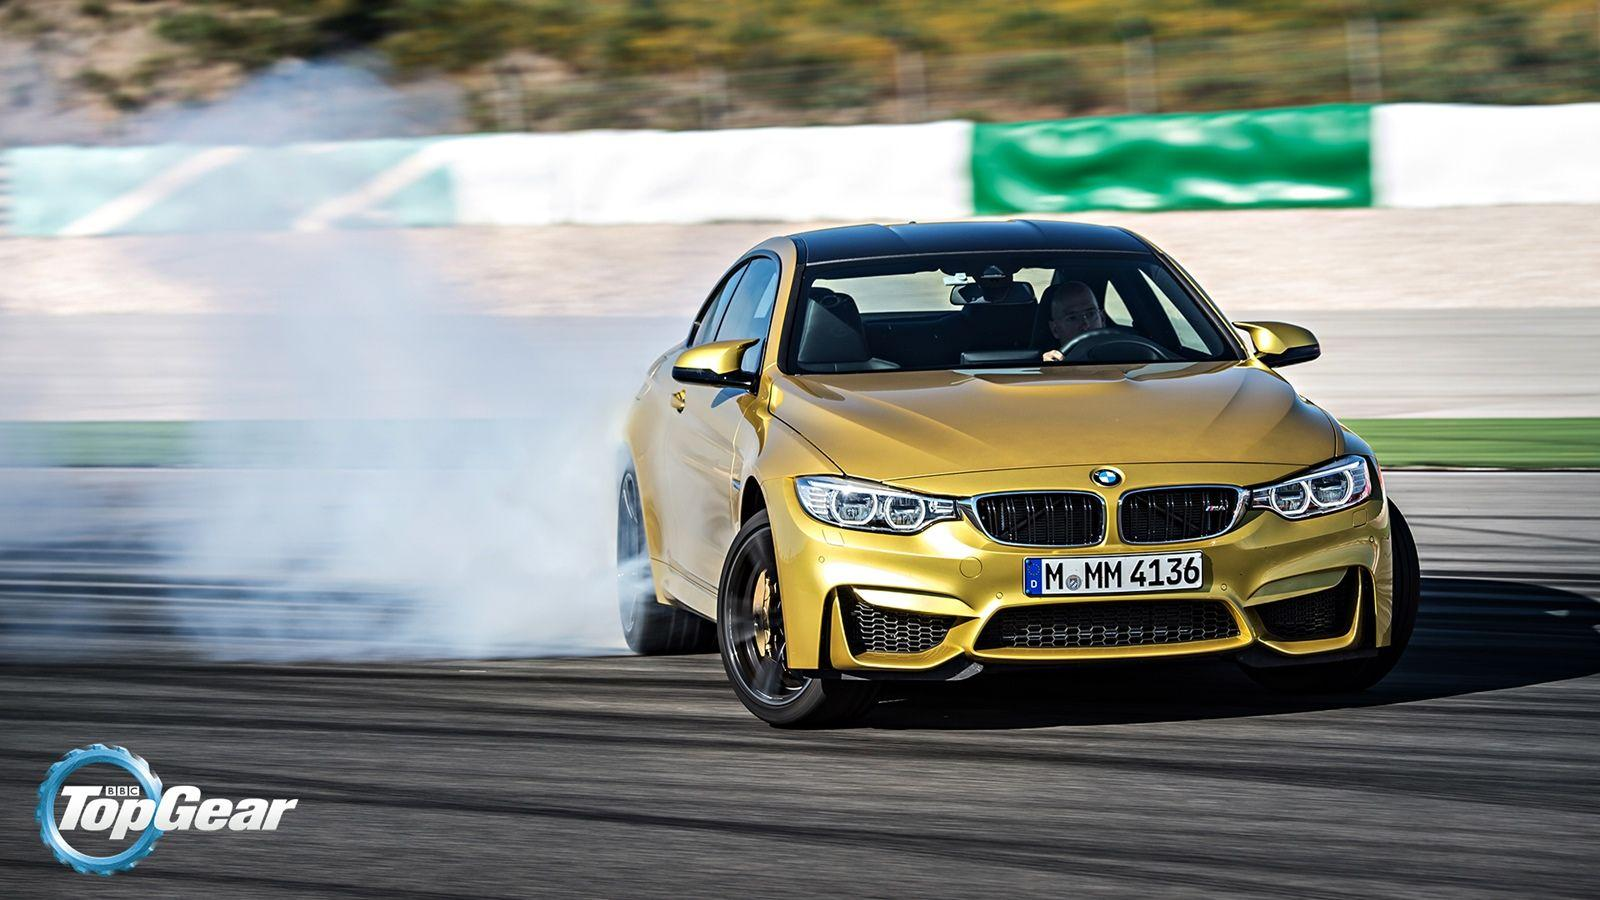 Drifting BMW Wallpapers - Wallpaper Cave